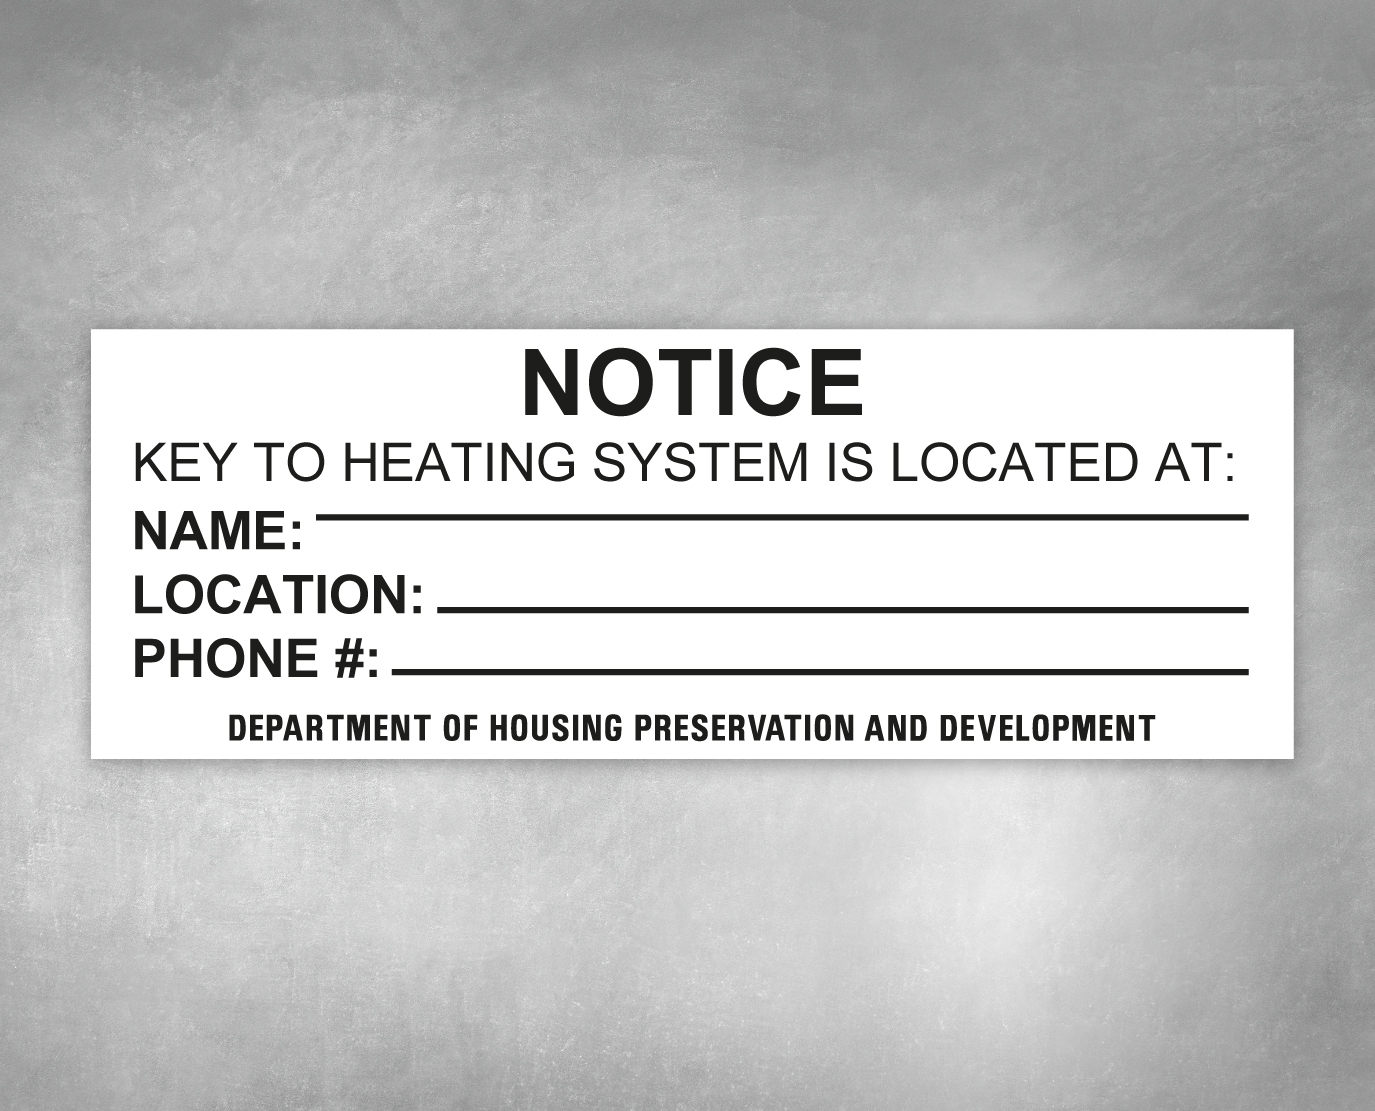 key to heating system notice